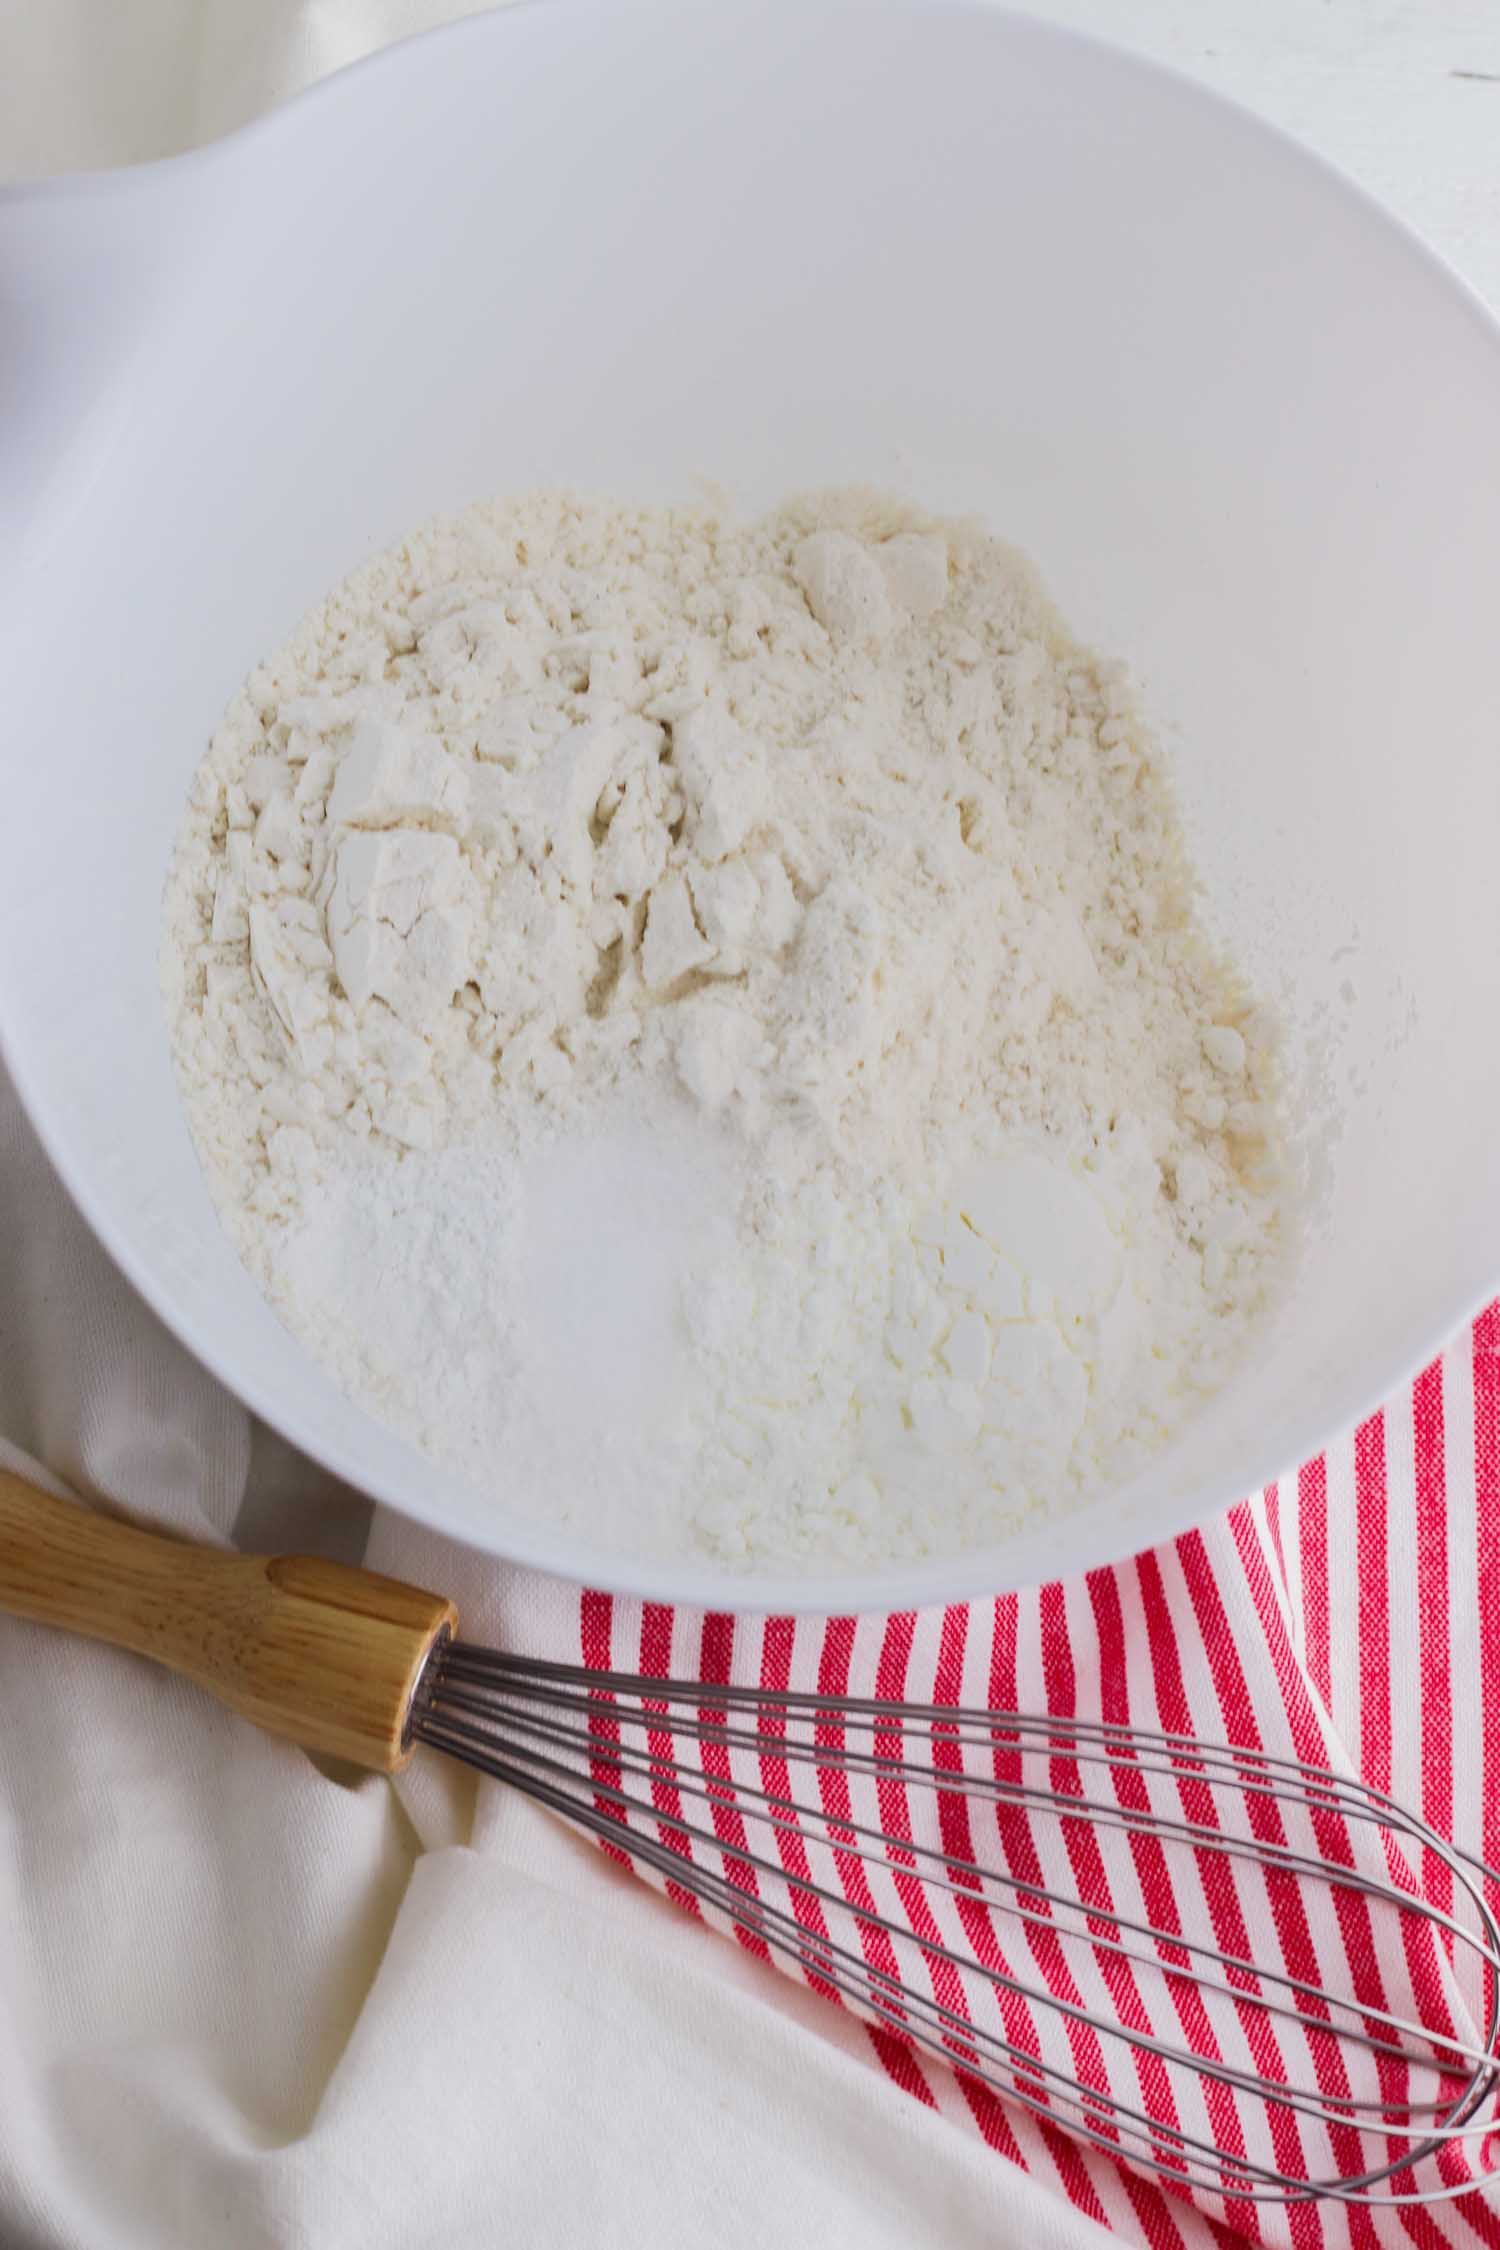 flour in a white bowl with whisk and red and white tea towel